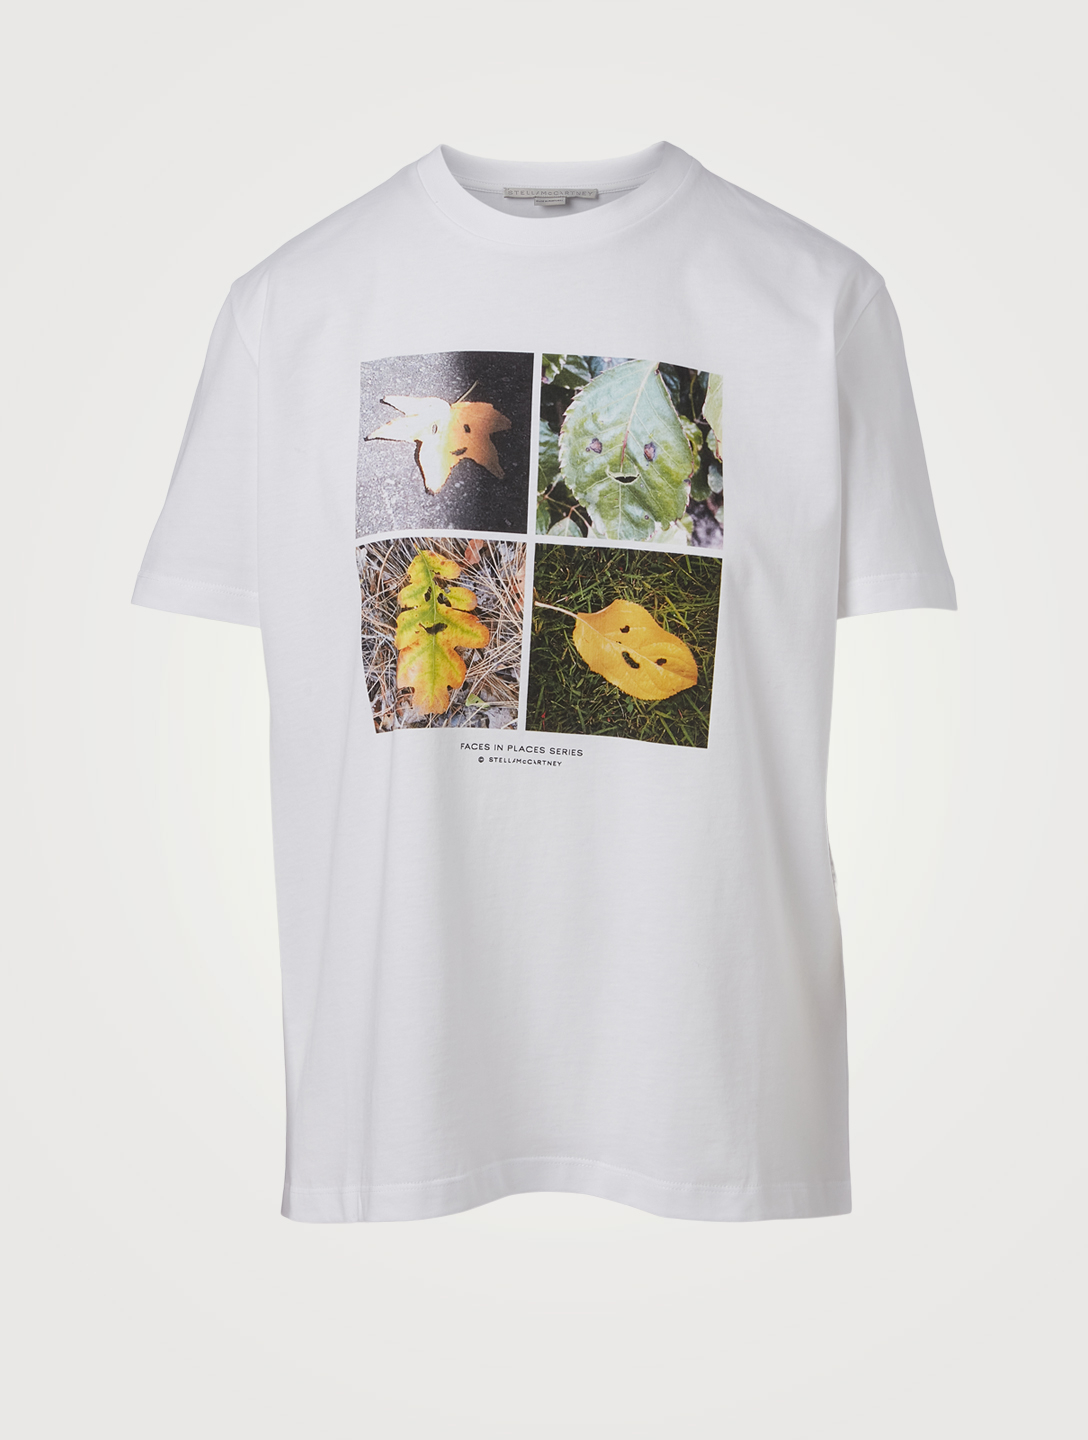 STELLA MCCARTNEY Faces In Places T-Shirt Women's White